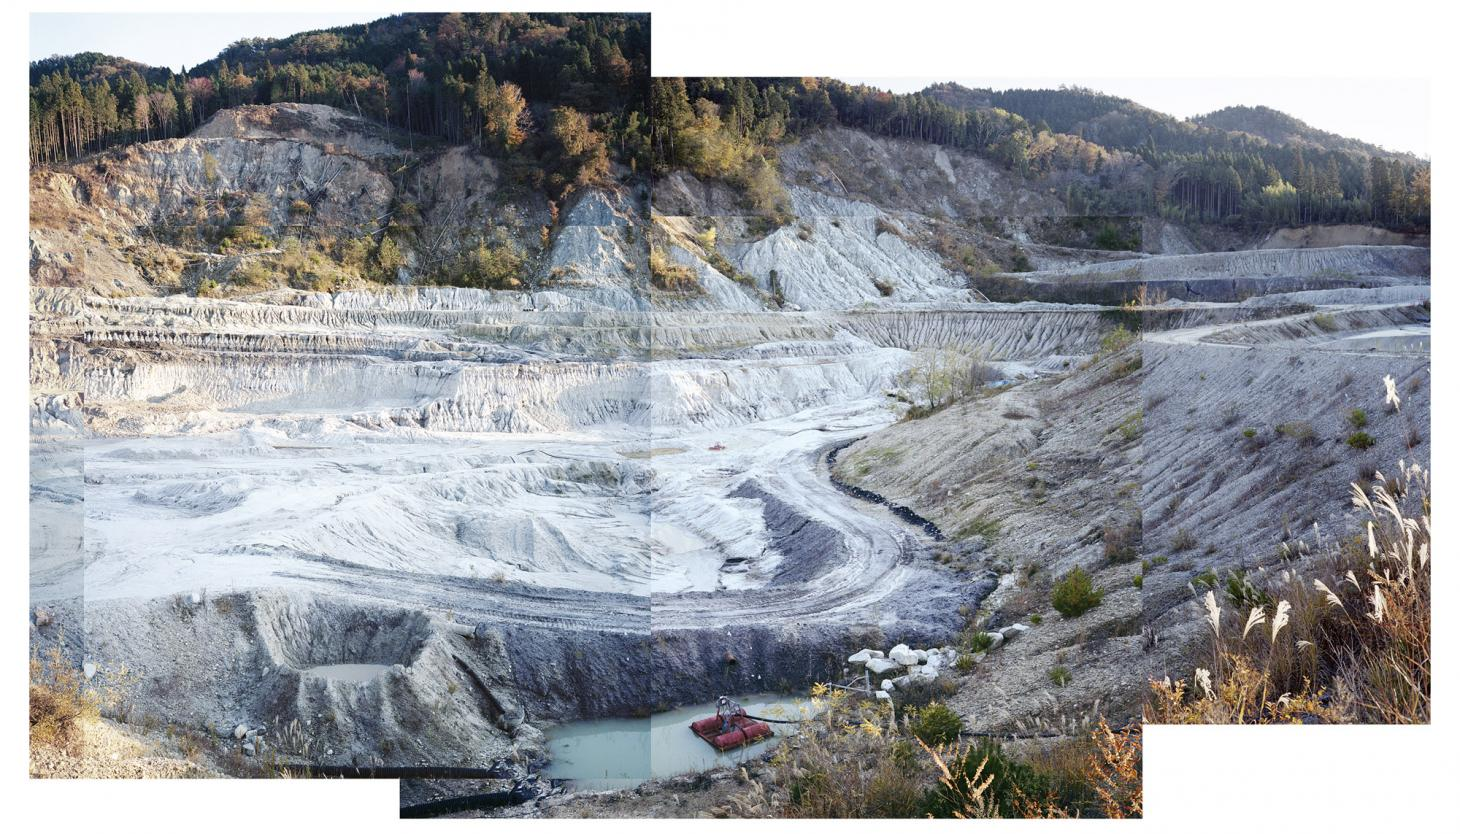 Collage of pictures showing a clay quarry in the Mino region of Japan